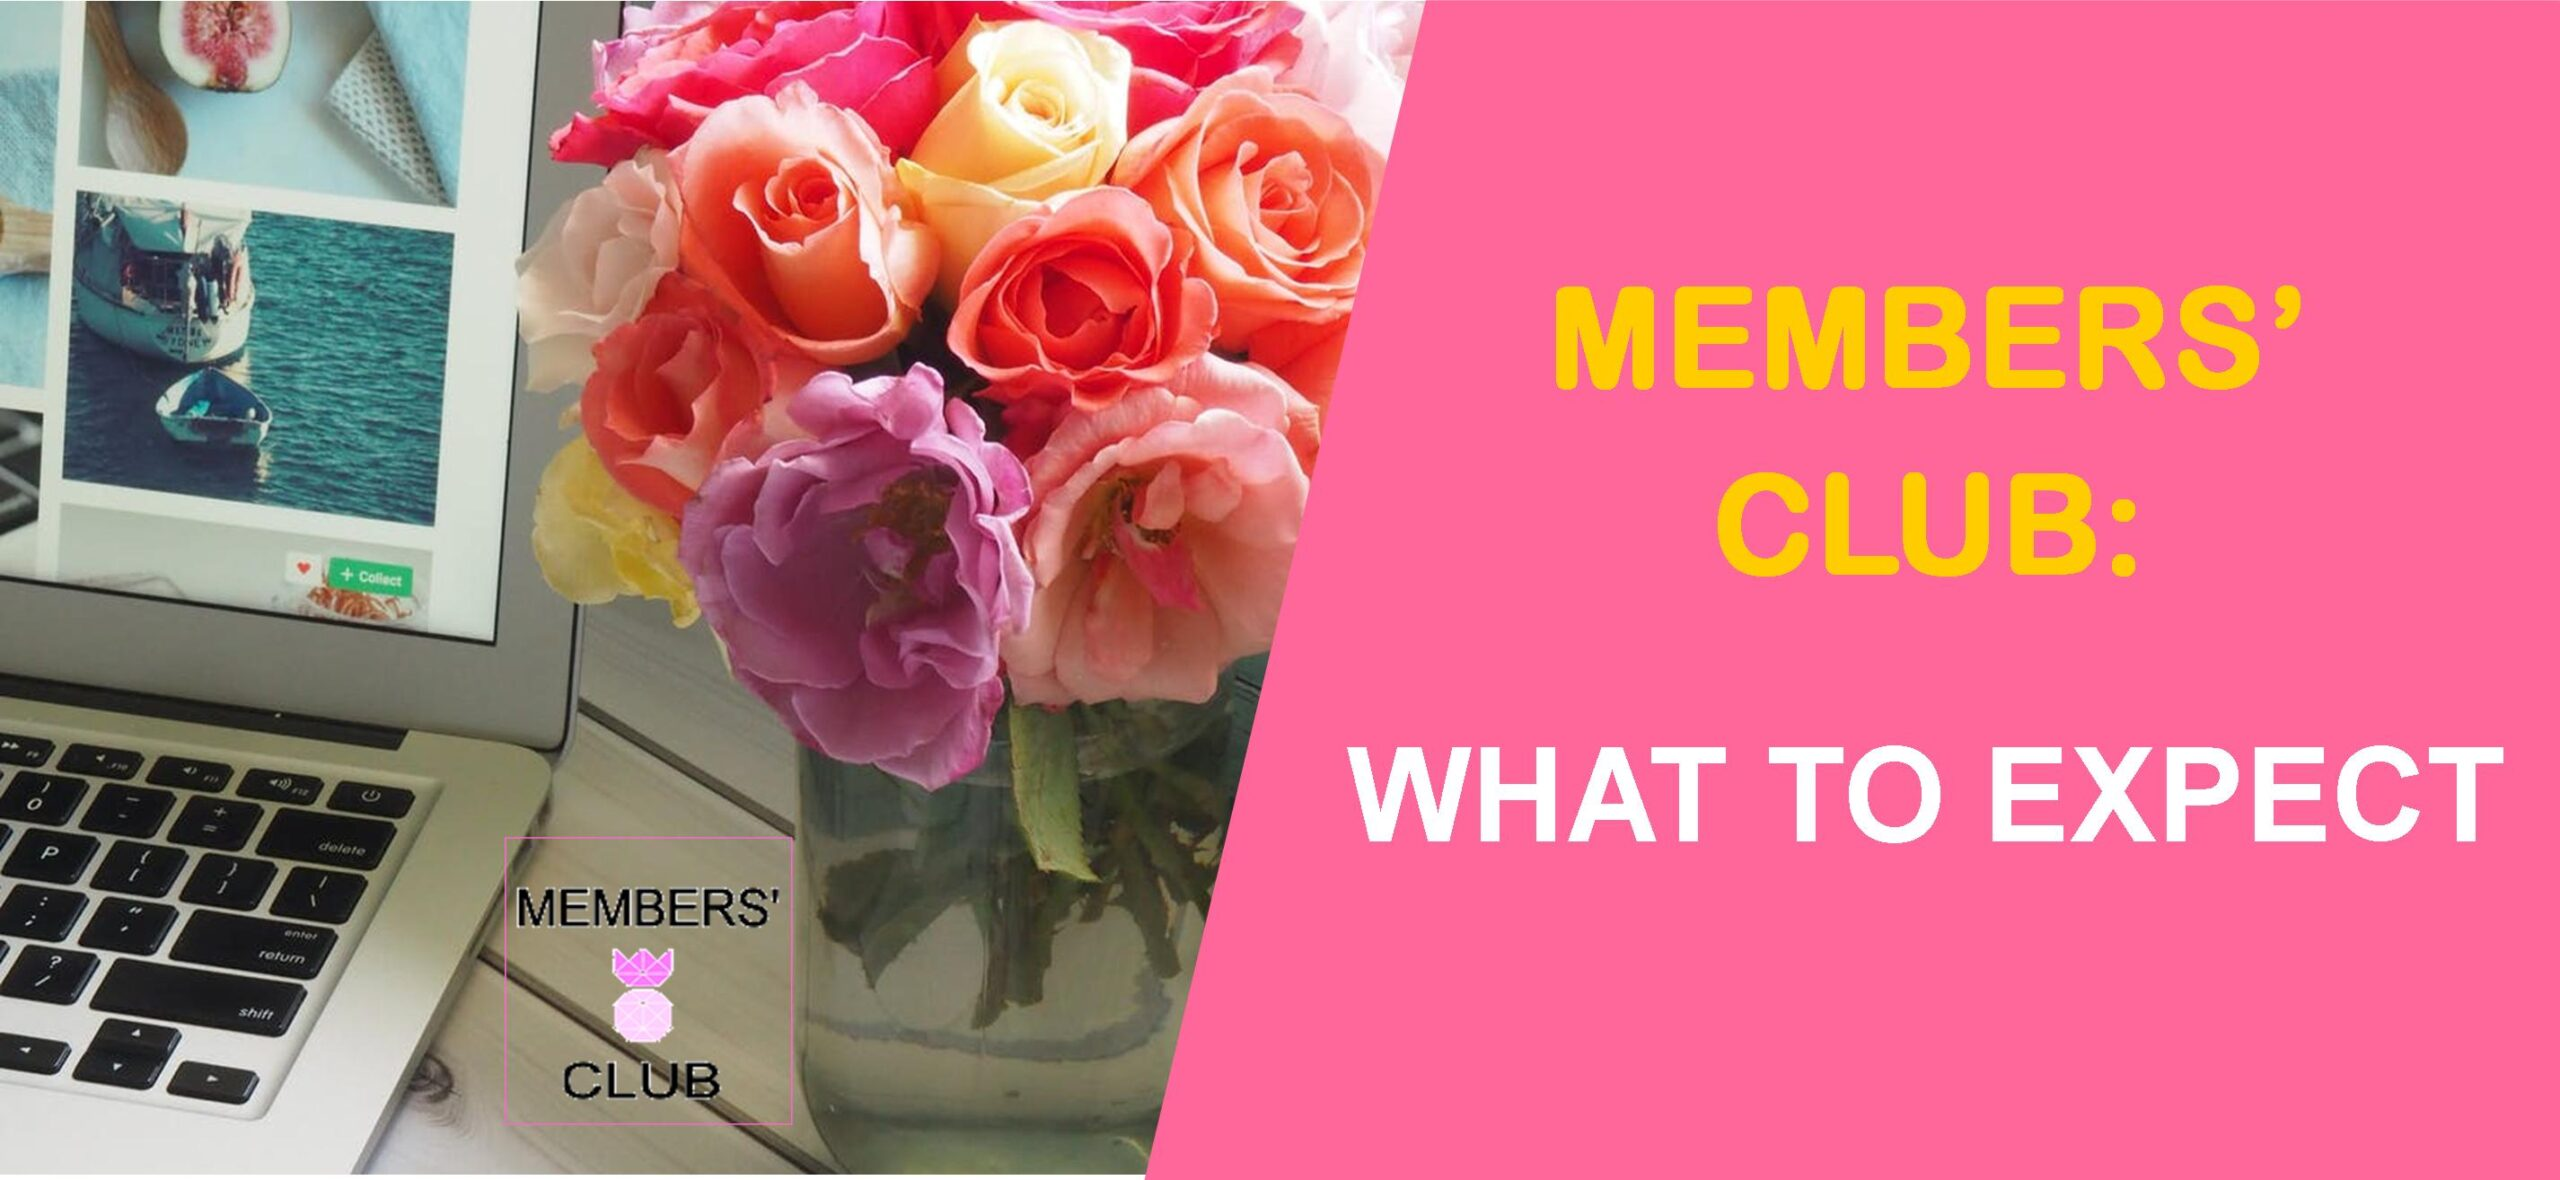 The Members' Club ladies take the strategies they learn inside the club, customize it to fit their businesses, and work hard to create better results.